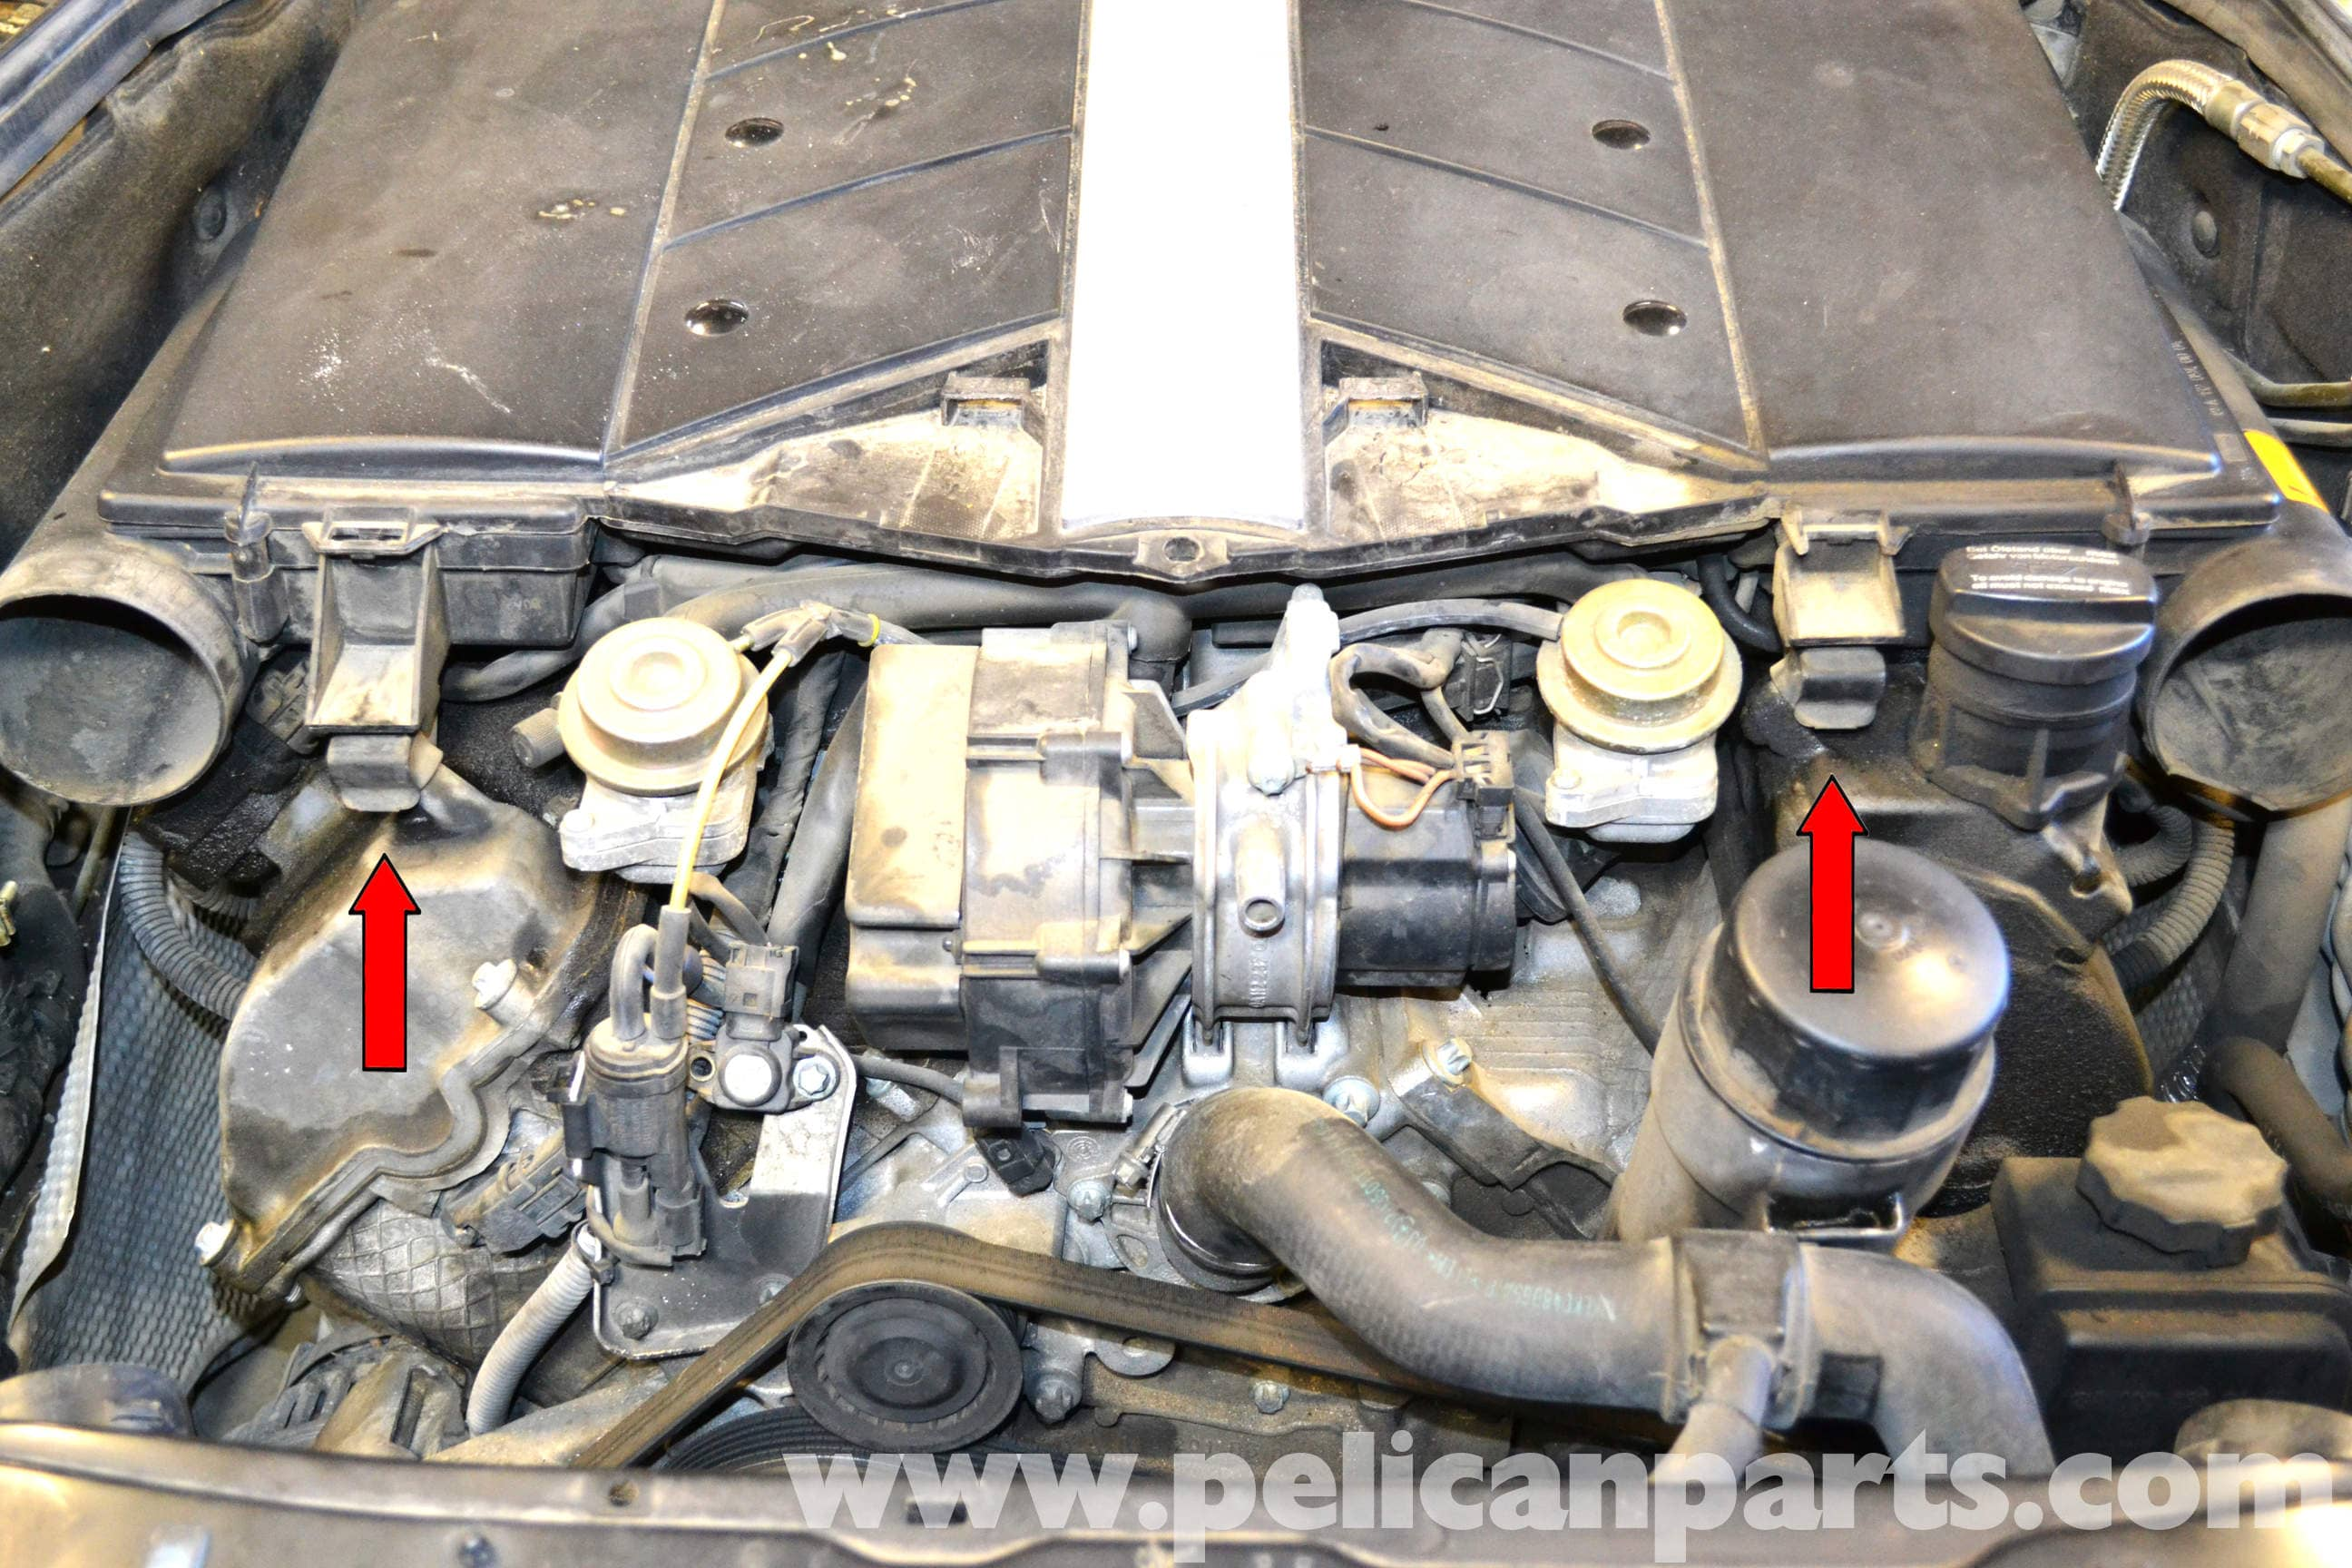 mercedes benz w203 valve cover gasket replacement 2001. Black Bedroom Furniture Sets. Home Design Ideas